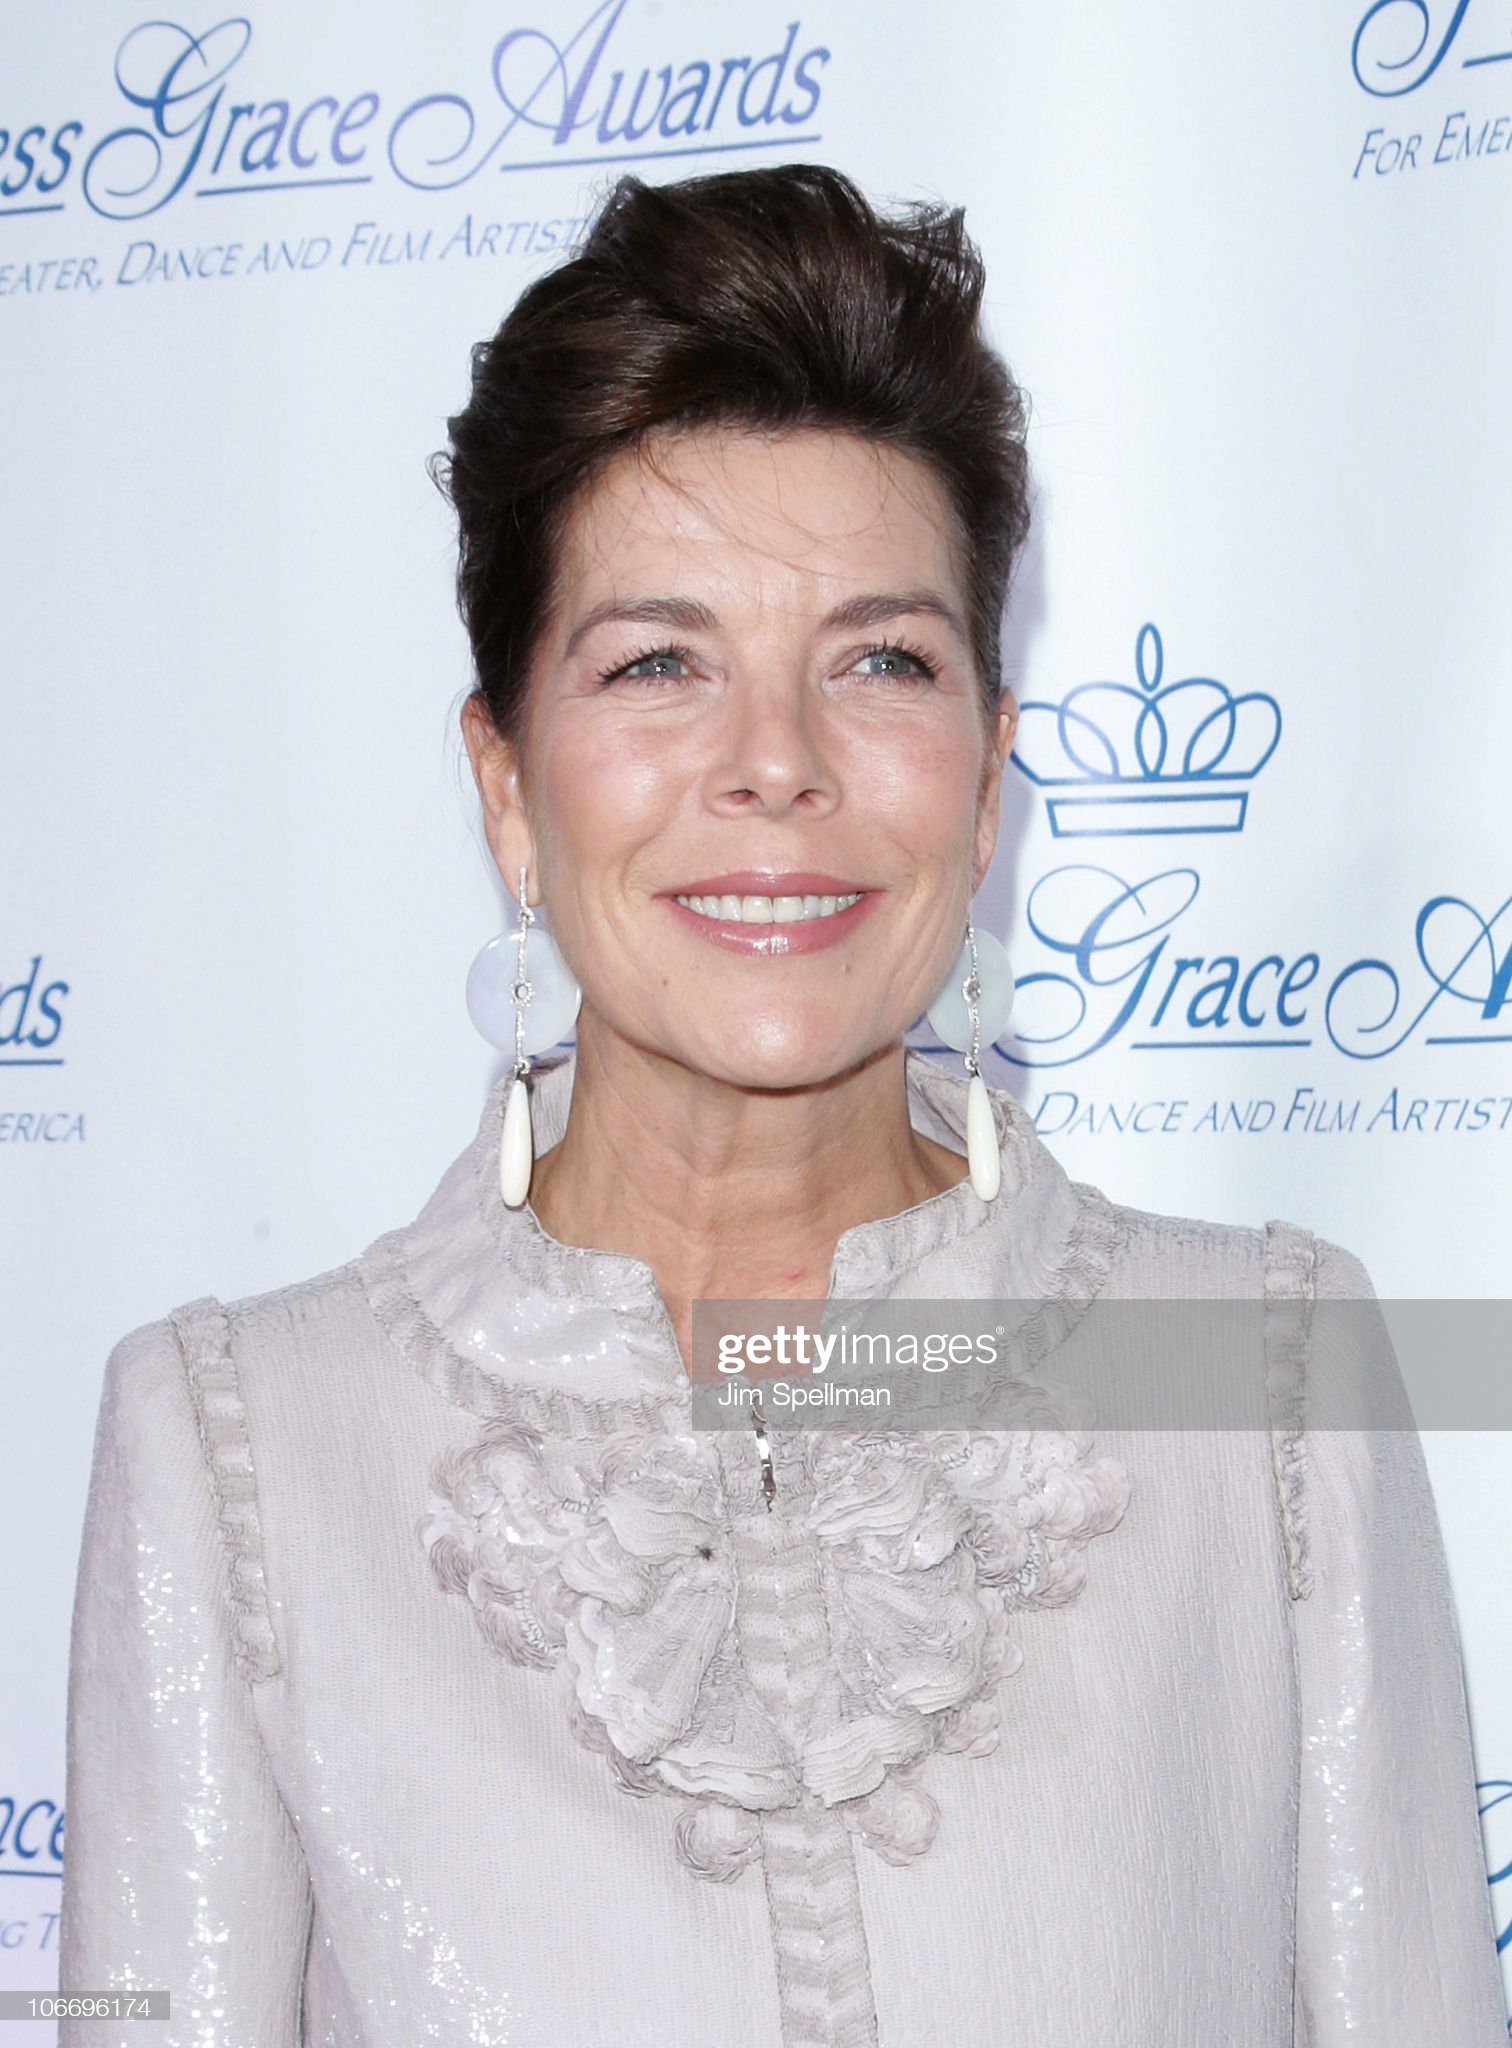 2010 Princess Grace Awards Gala : News Photo